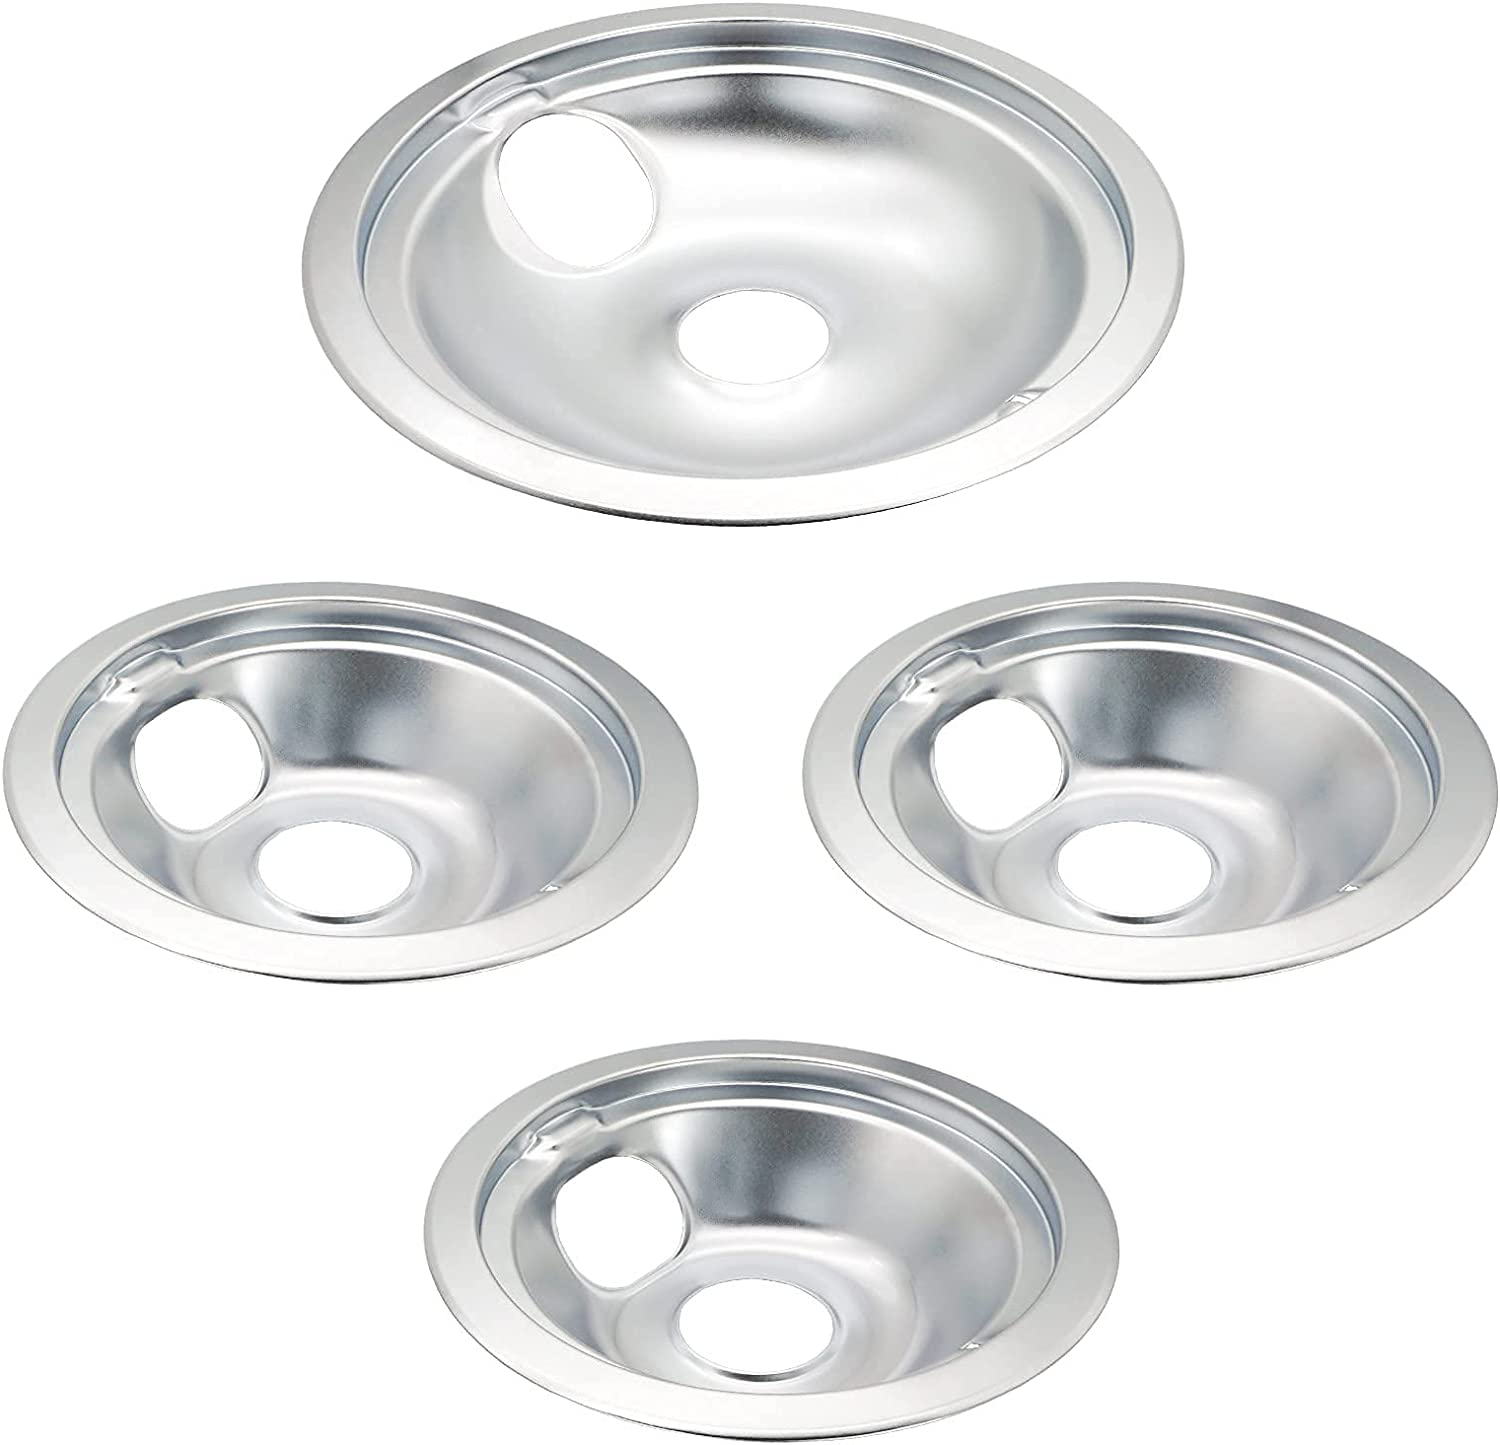 Siwdoy WB31T10010 Max 52% OFF and WB31T10011 Replacement Co Drip Pans depot Chrome